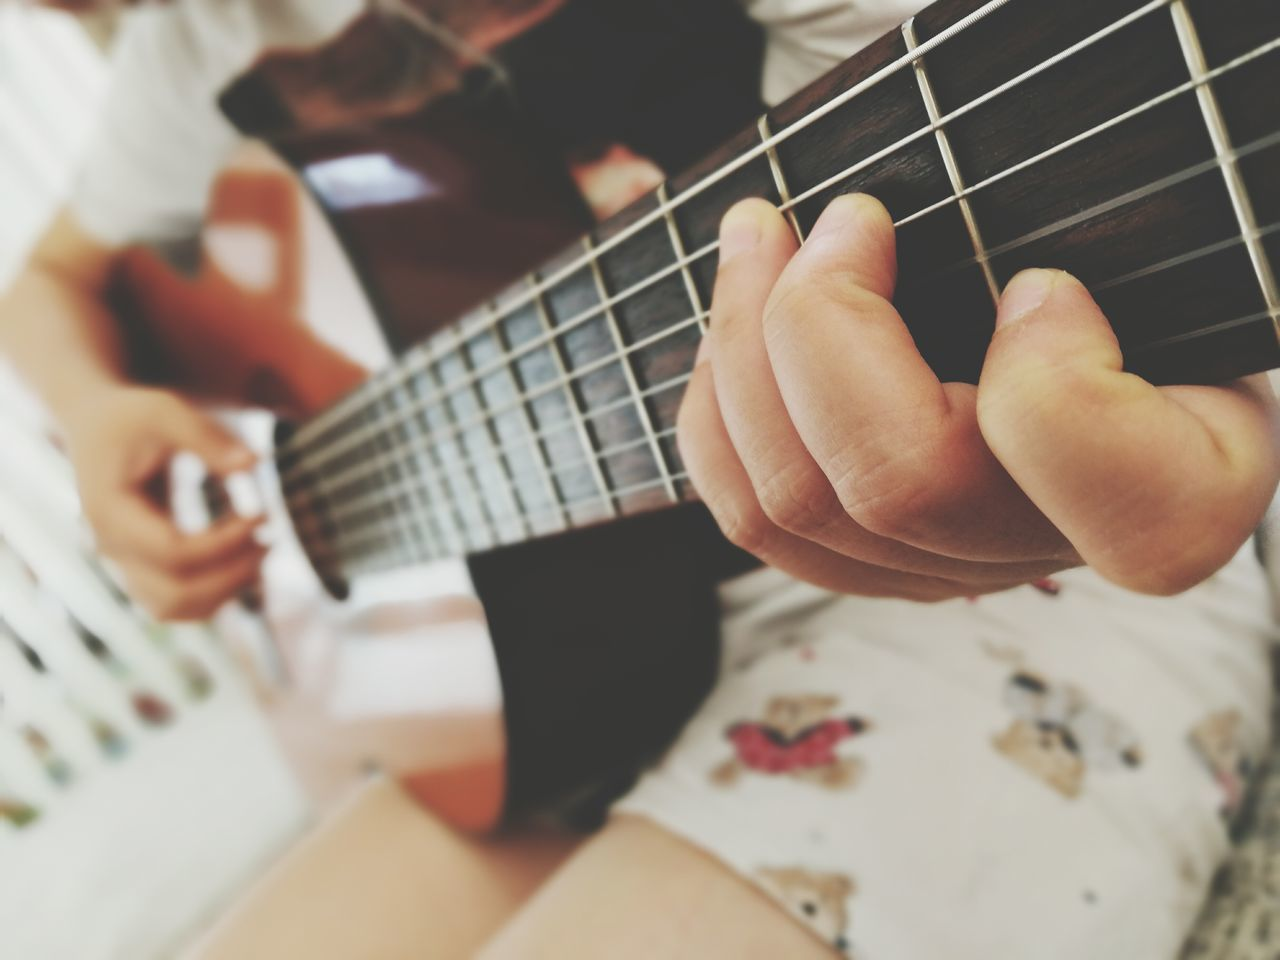 music, musical instrument, guitar, playing, musical instrument string, fretboard, arts culture and entertainment, human hand, indoors, acoustic guitar, musician, one person, leisure activity, plucking an instrument, real people, skill, woodwind instrument, lifestyles, close-up, human body part, classical guitar, electric guitar, day, people